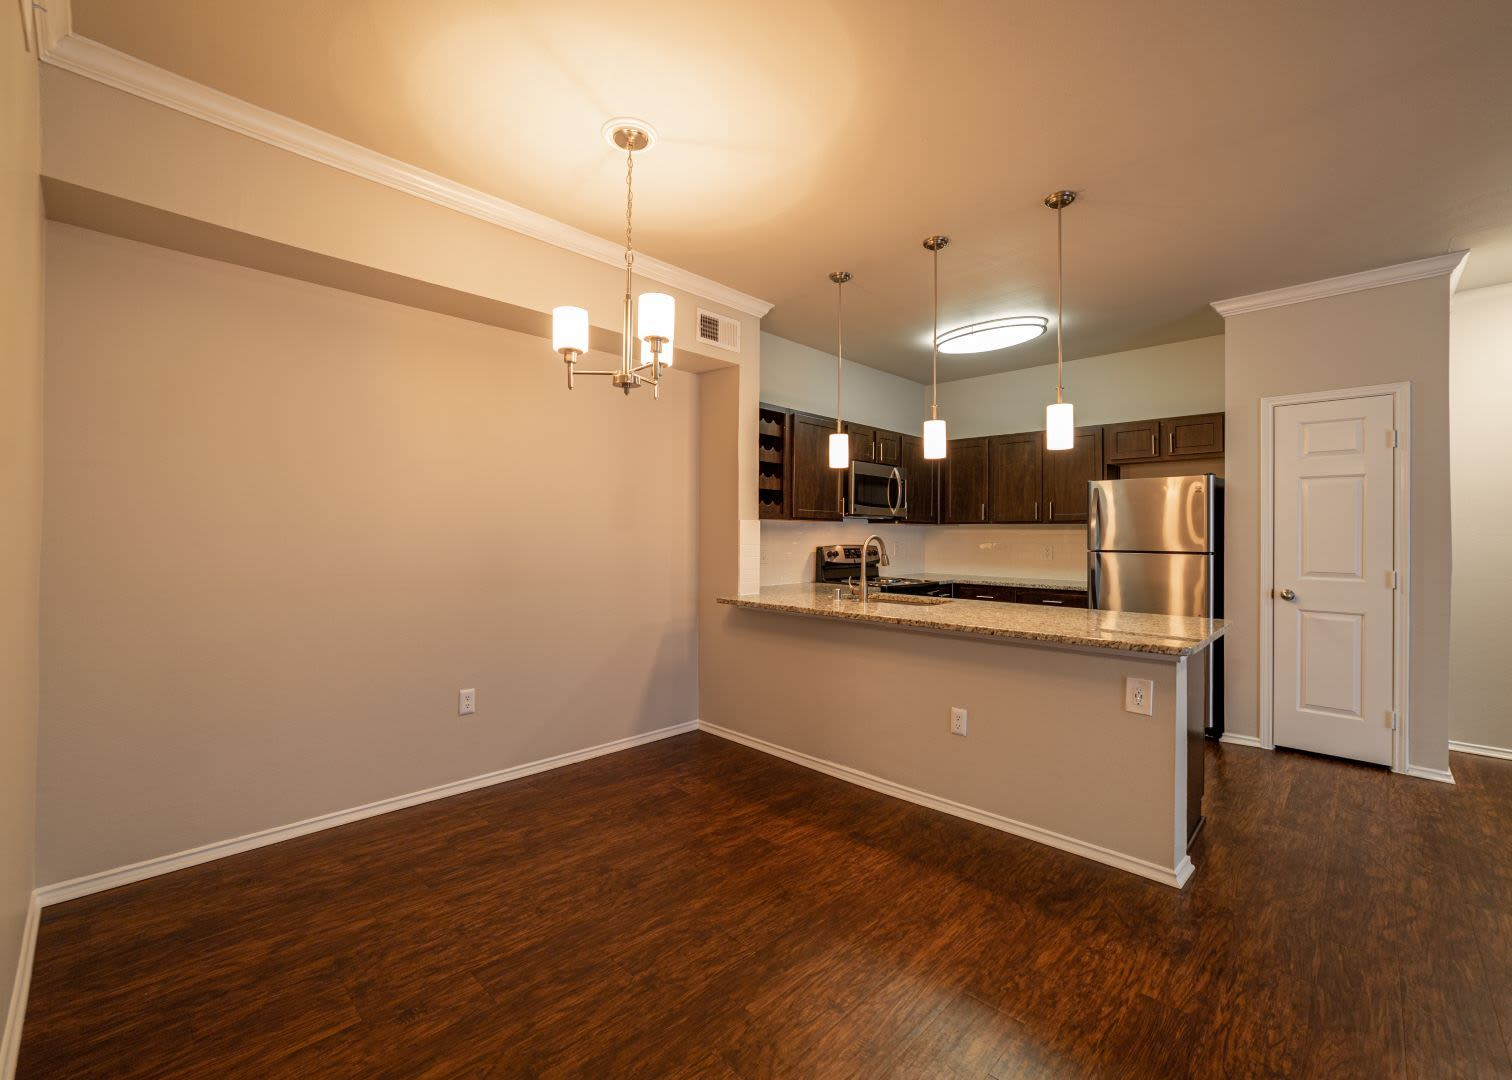 Spacious dining area next to kitchen at Marquis at Stonebriar in Frisco, Texas